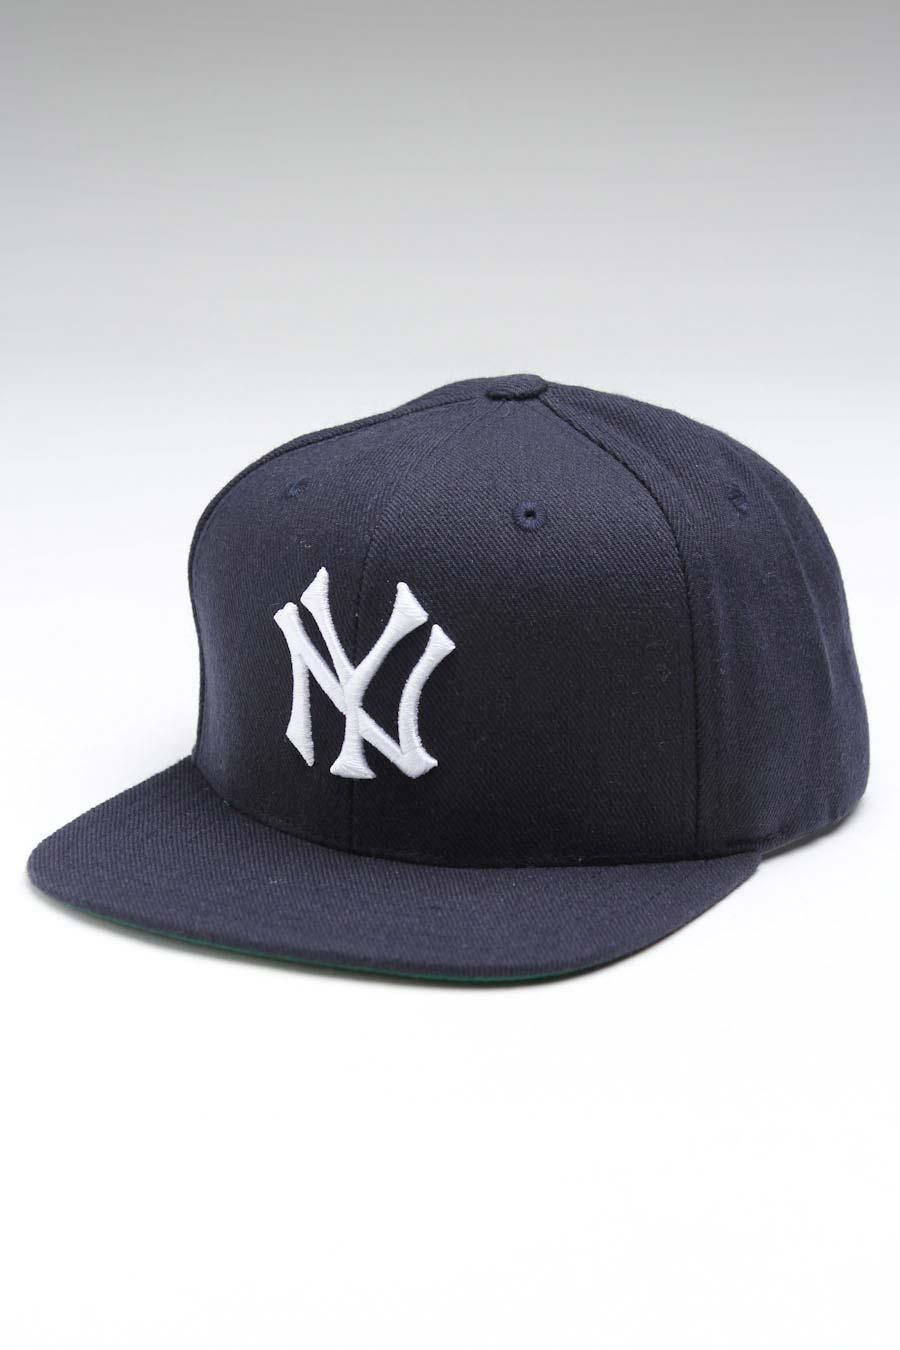 20 Nyc Yankees Mlb American Needle Cooperstown 400 Nyy 22 Yankees Hat On Jackthreads Http Www Jack With Images Fitted Hats Mens Accessories Fashion Hip Hop Gear